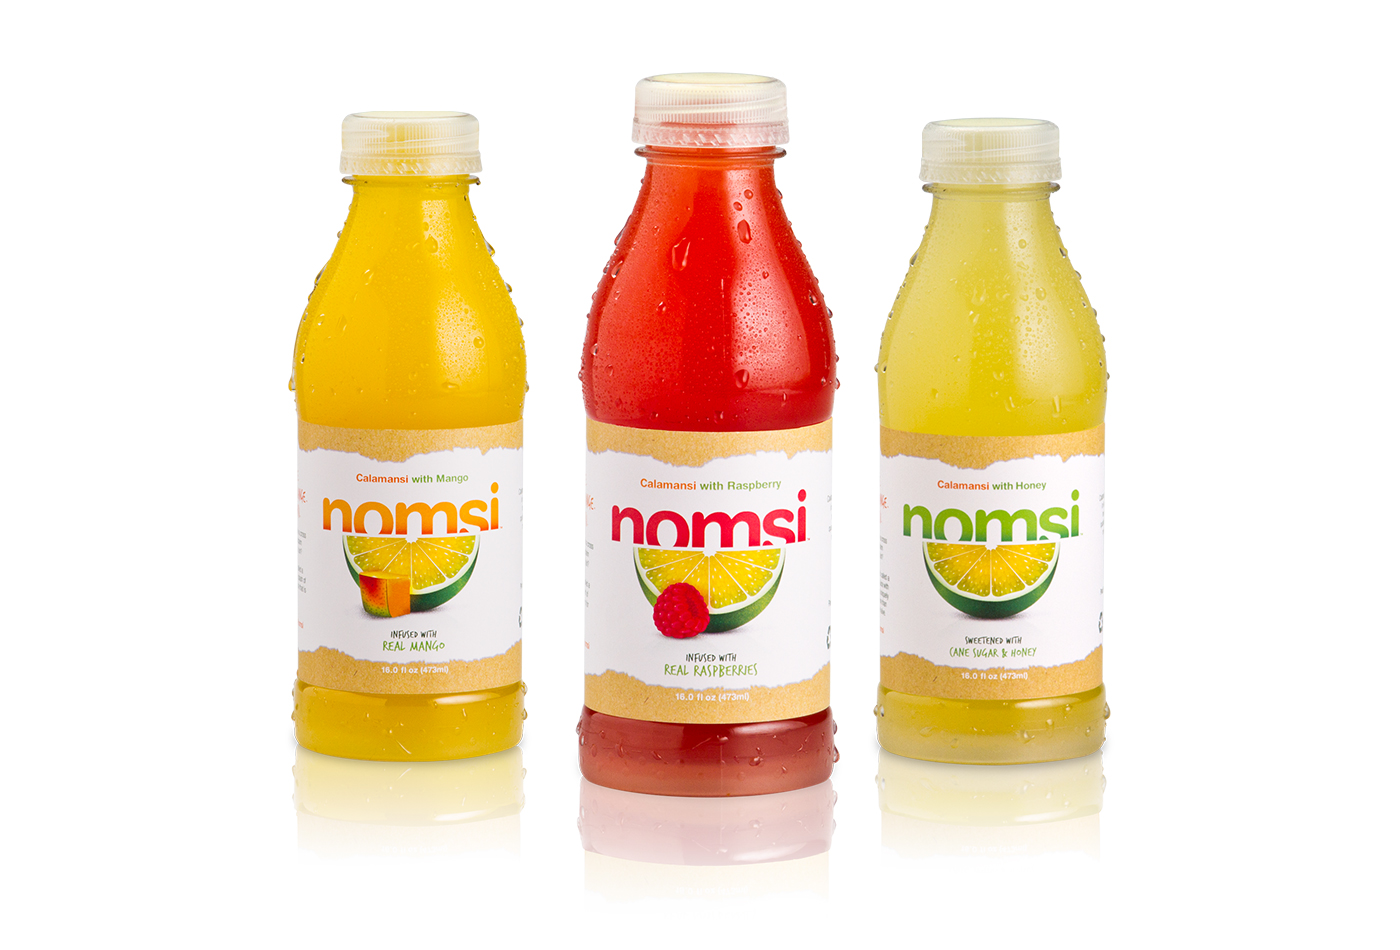 Nomsi Bottle shots